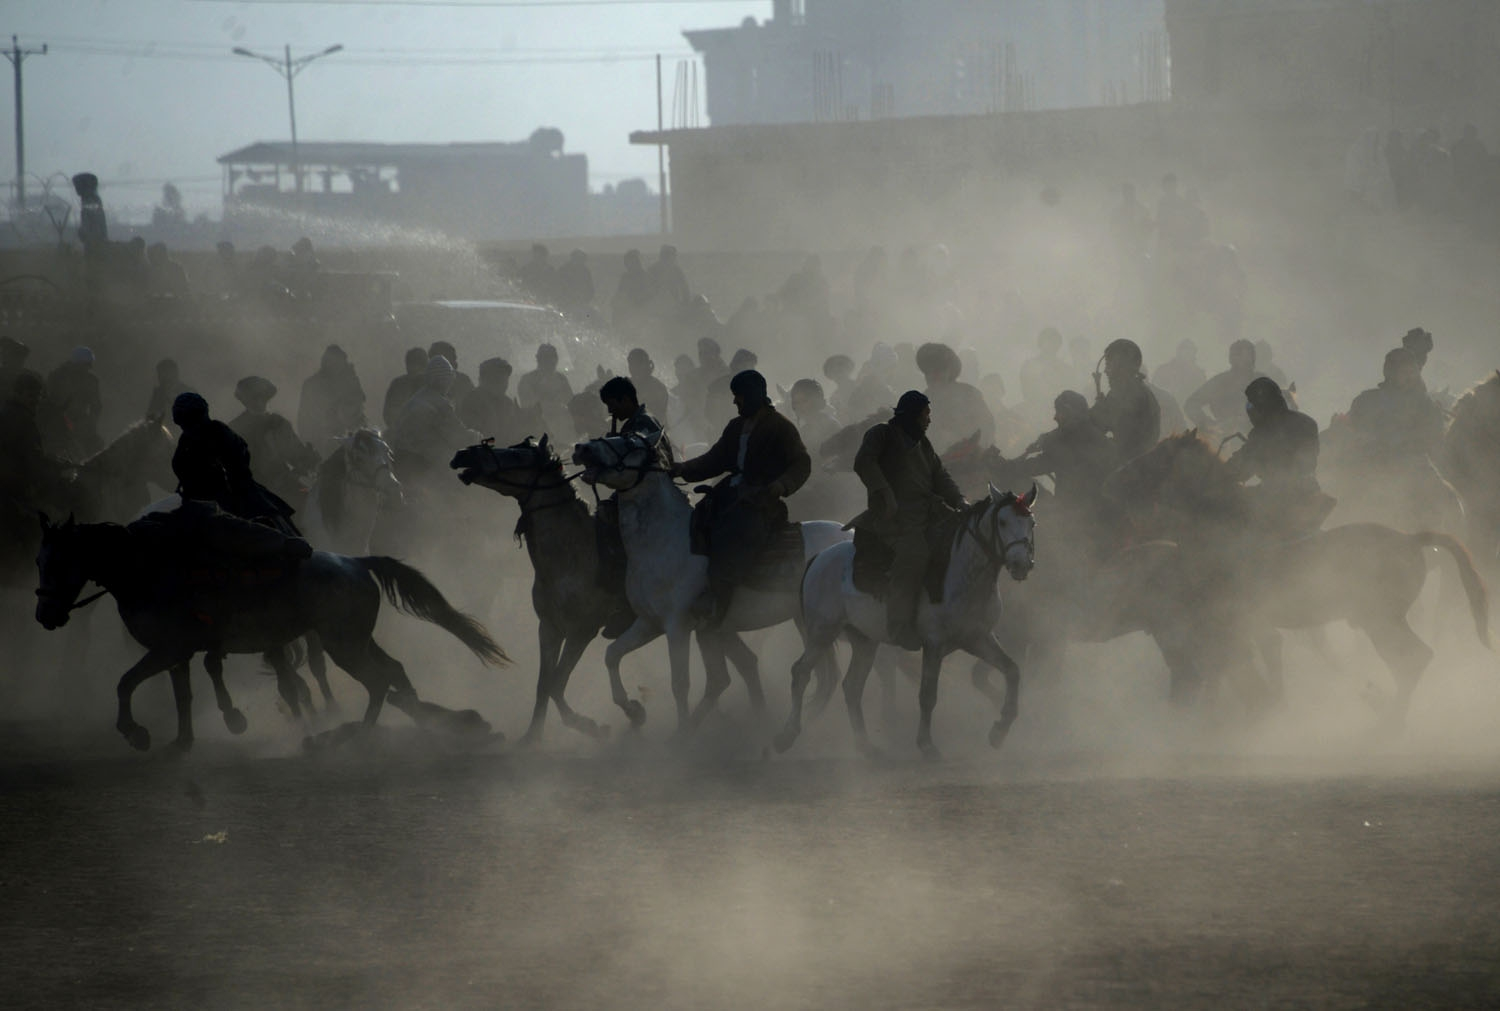 In this photograph taken on December 15, 2017, Afghan horsemen compete during a game of the traditional sport of Buzkashi in Mazar-i-Sharif.